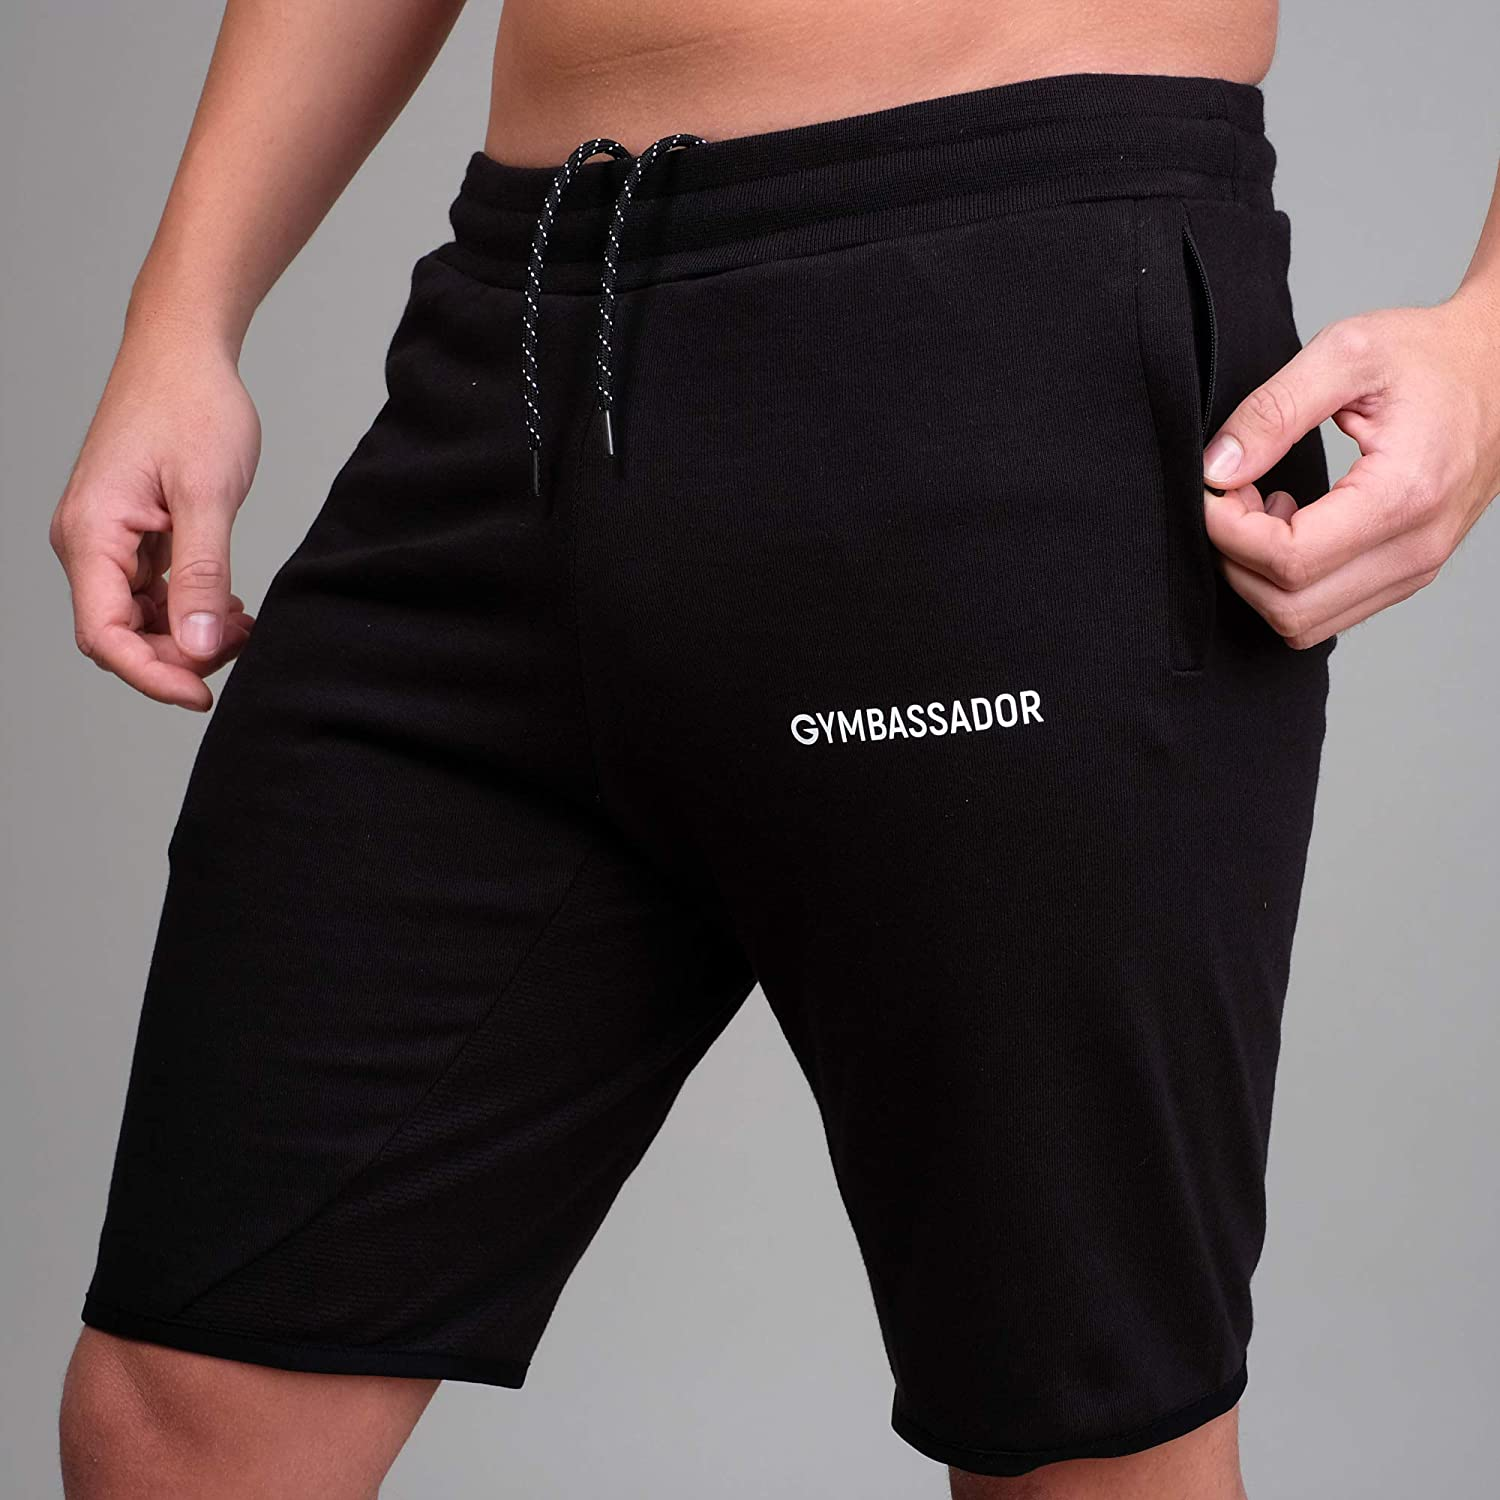 Gymbassador   Kurze Trainingshose, Short, Trainingsanzug Herren (Slim Fit)   Funktionell für Sport, Fitness, Training, Workout, Gym, Yoga, Freizeit   Nachhaltig